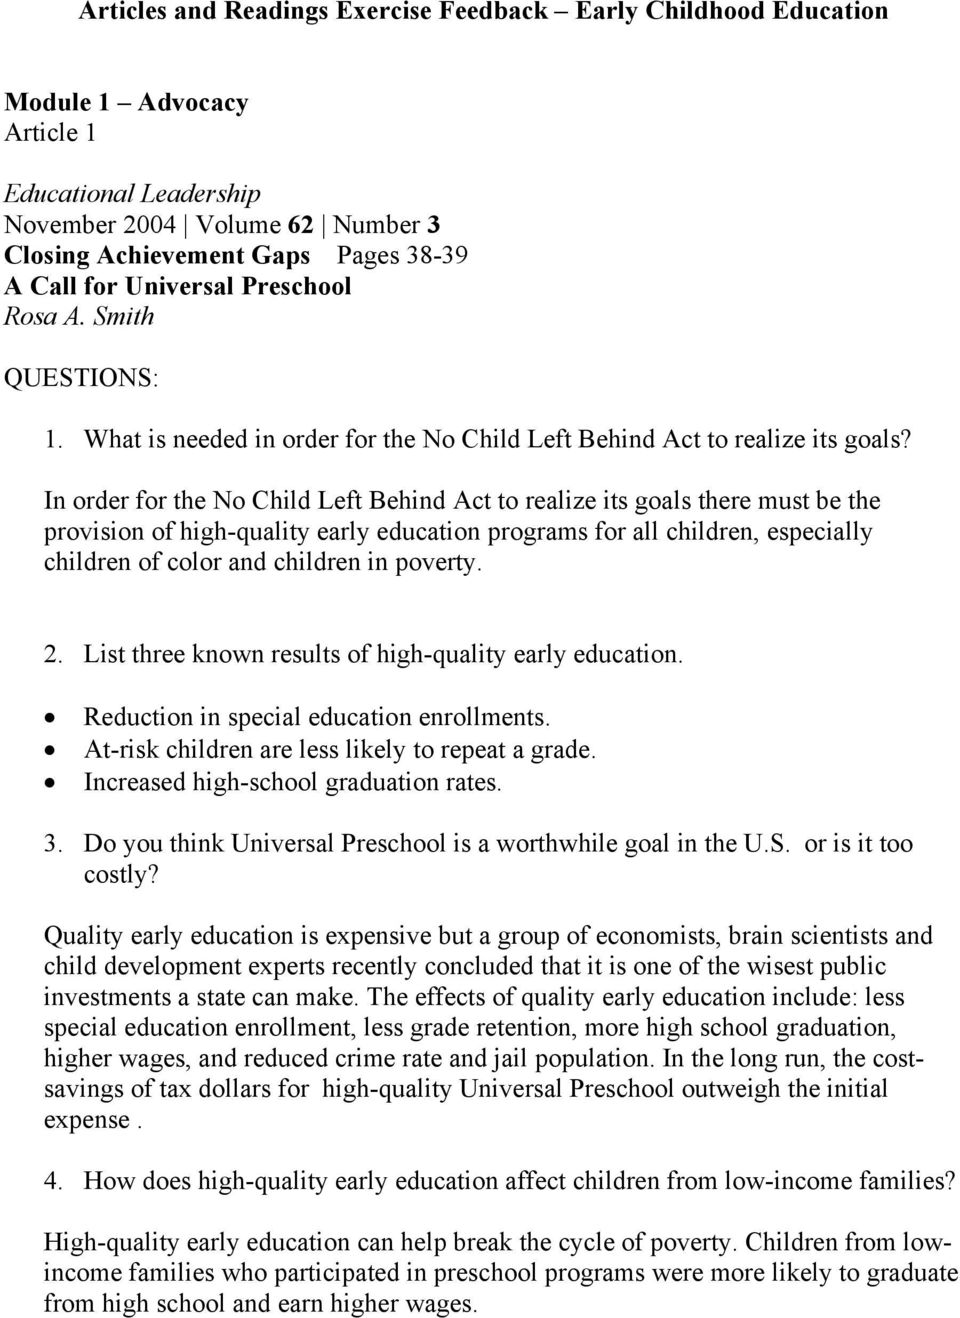 In order for the No Child Left Behind Act to realize its goals there must be the provision of high-quality early education programs for all children, especially children of color and children in